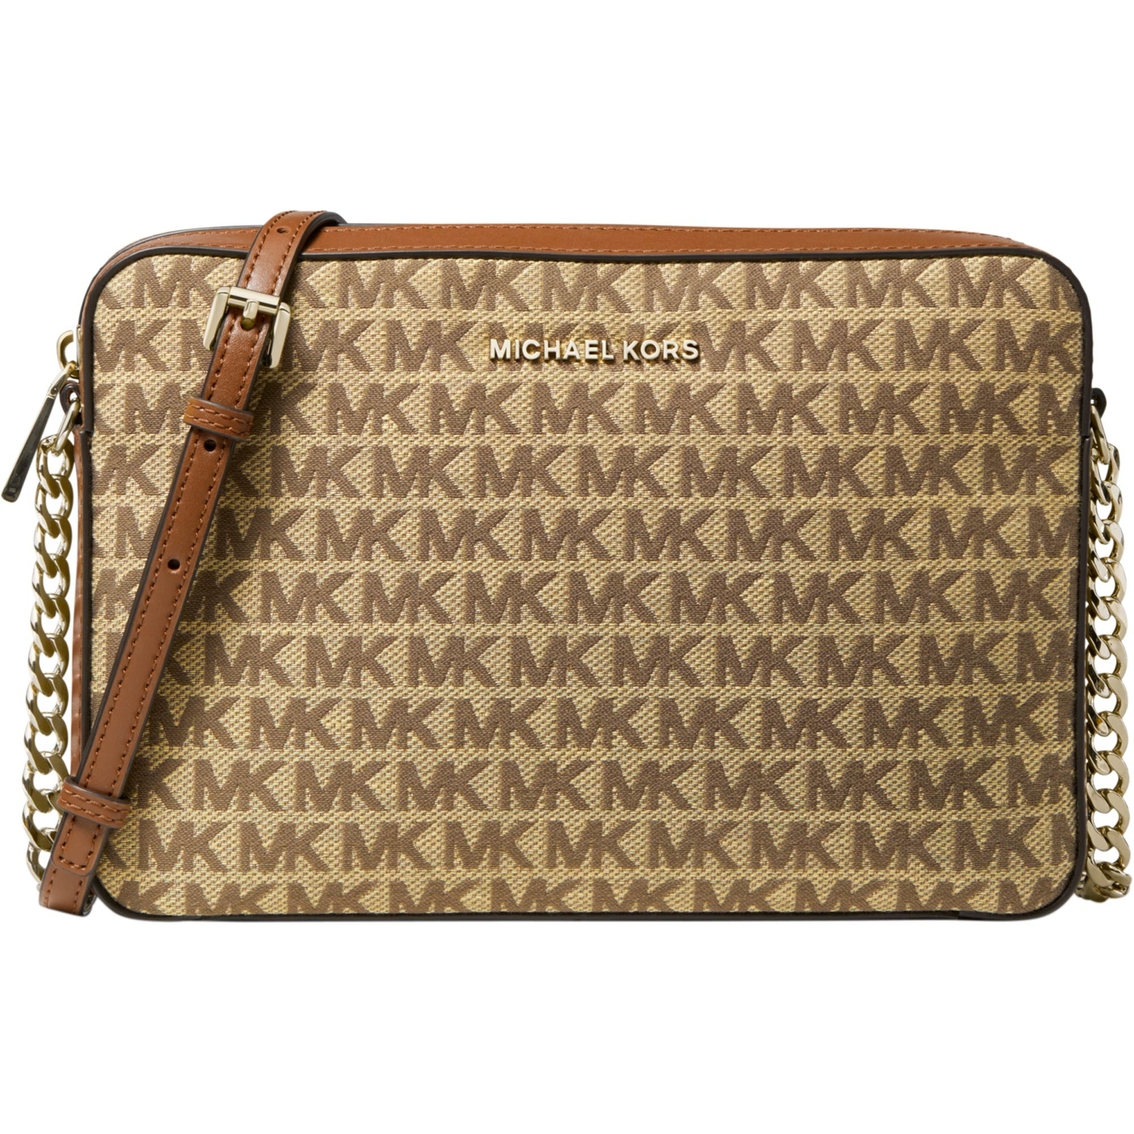 MICHAEL Michael Kors Jet Set Signature Large Crossbody Bag | Dillard's